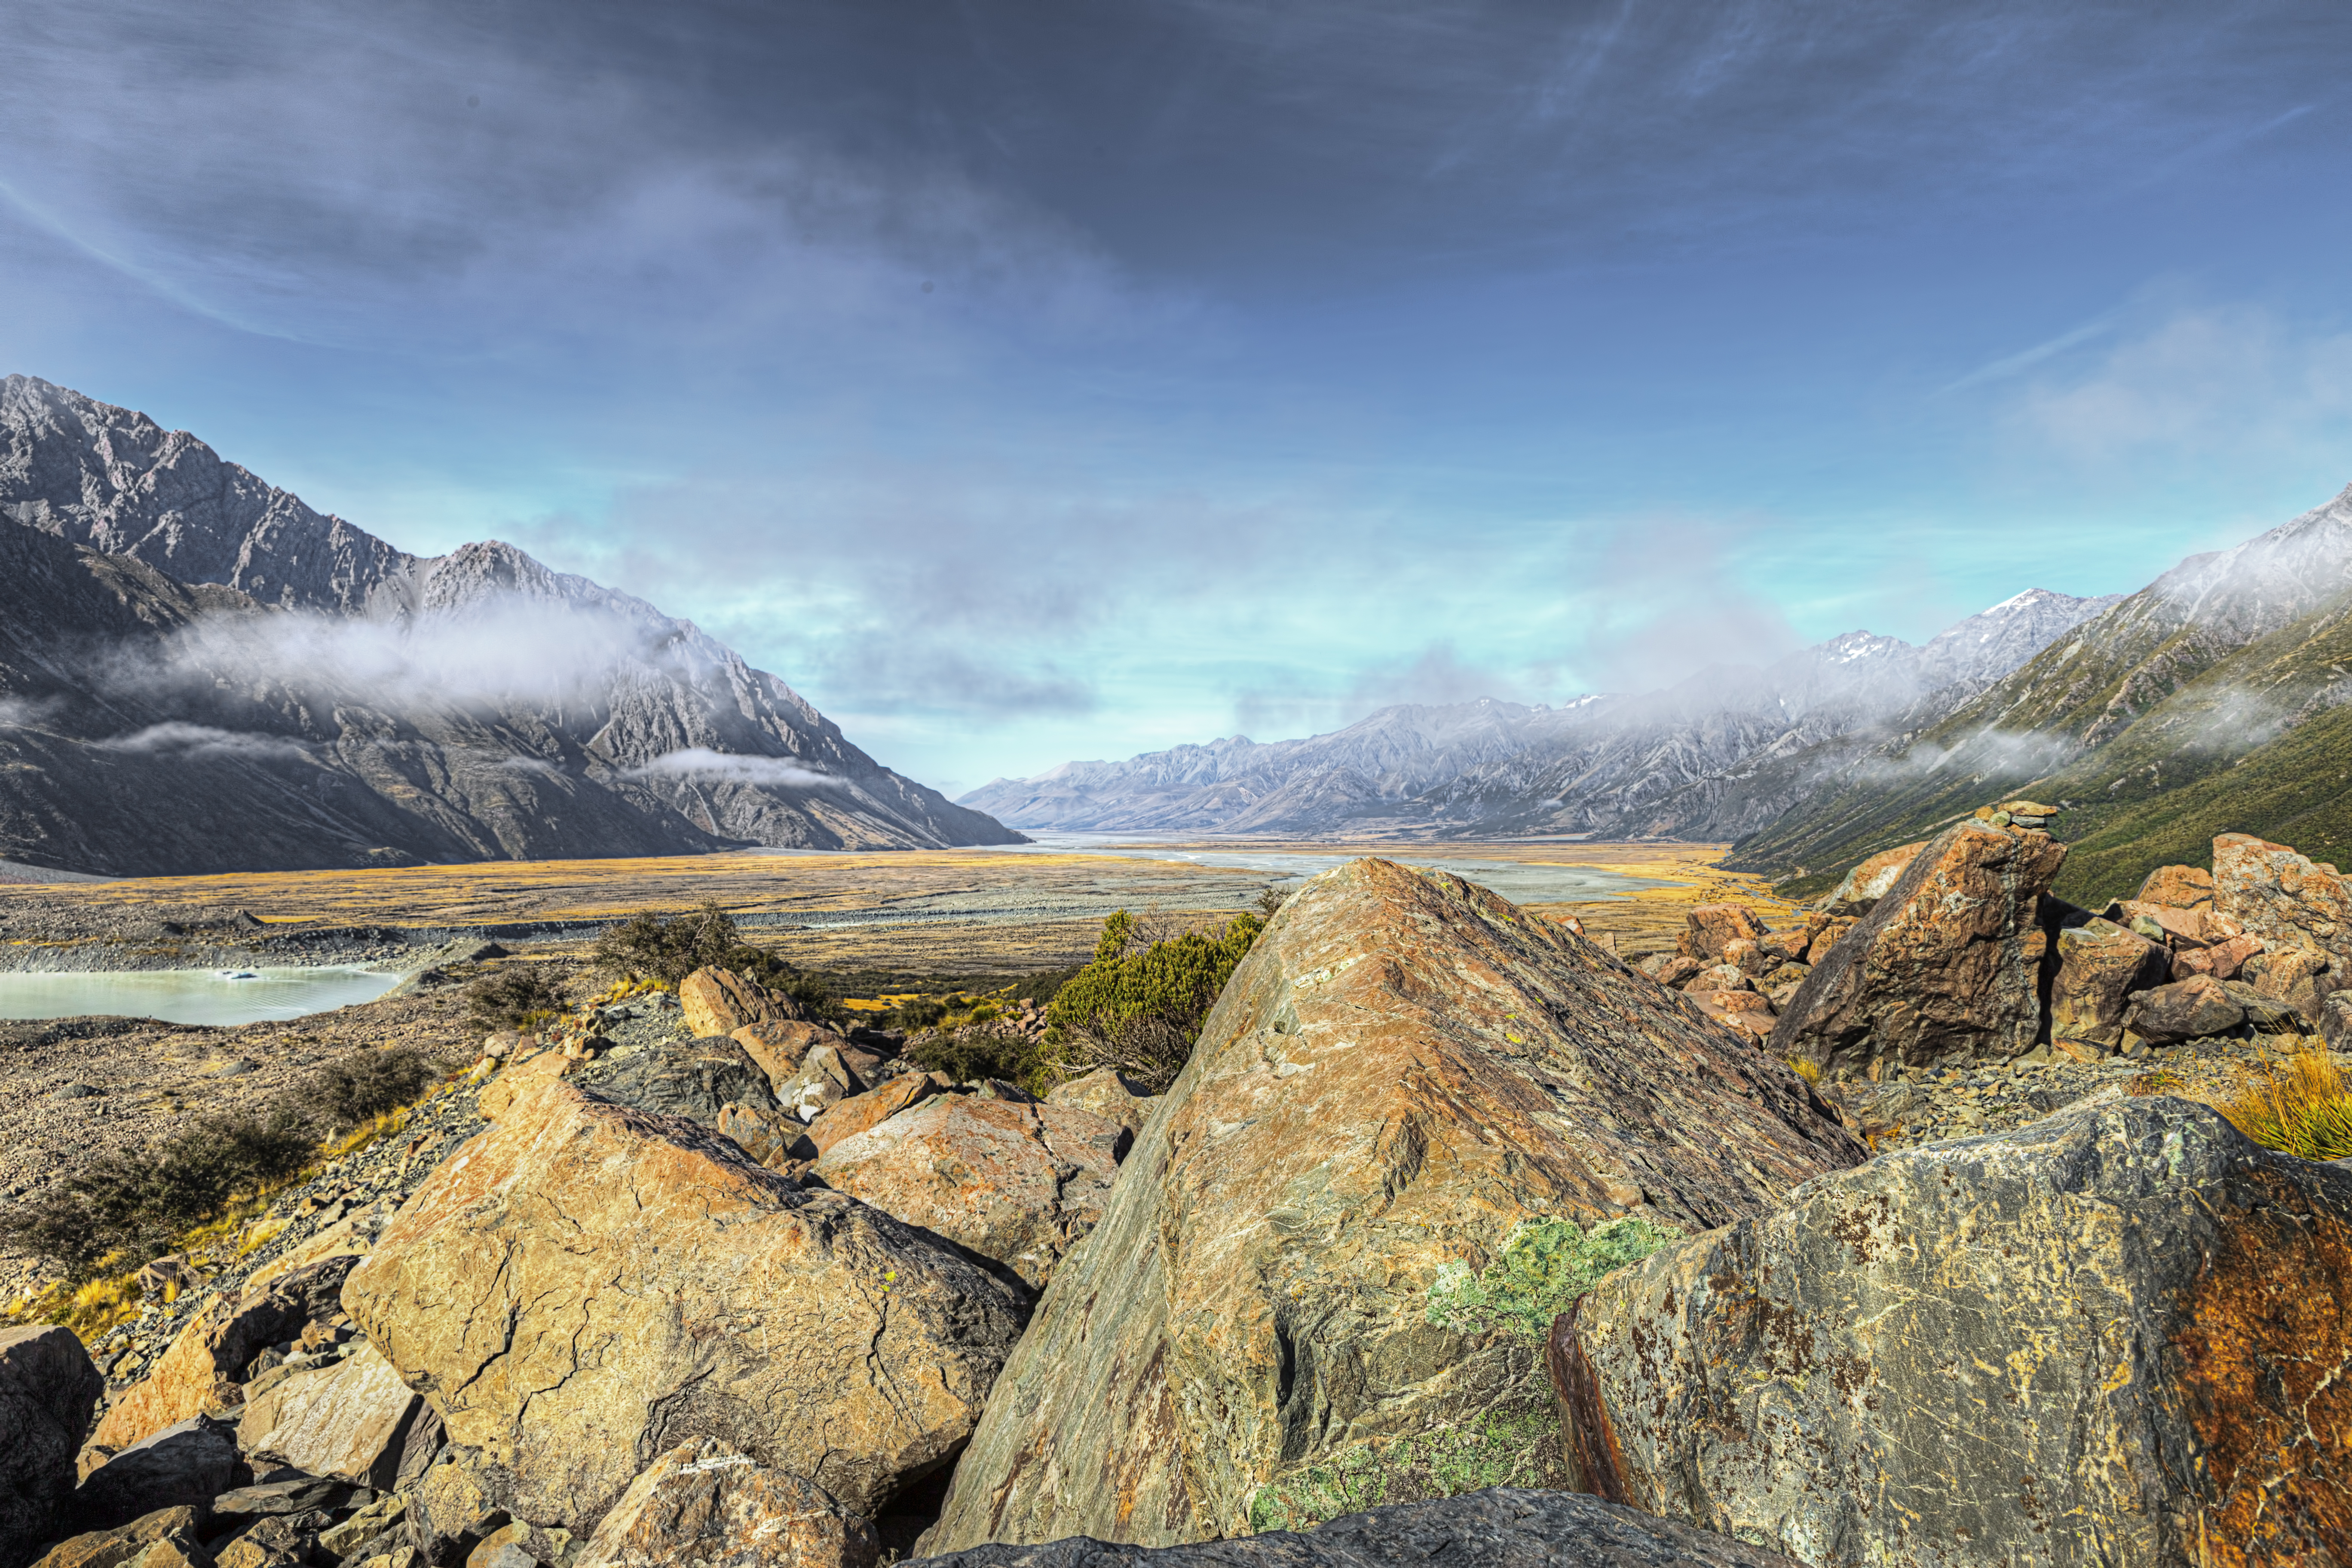 Looking down the tasman valley in the aoraki/mount cook national park photo